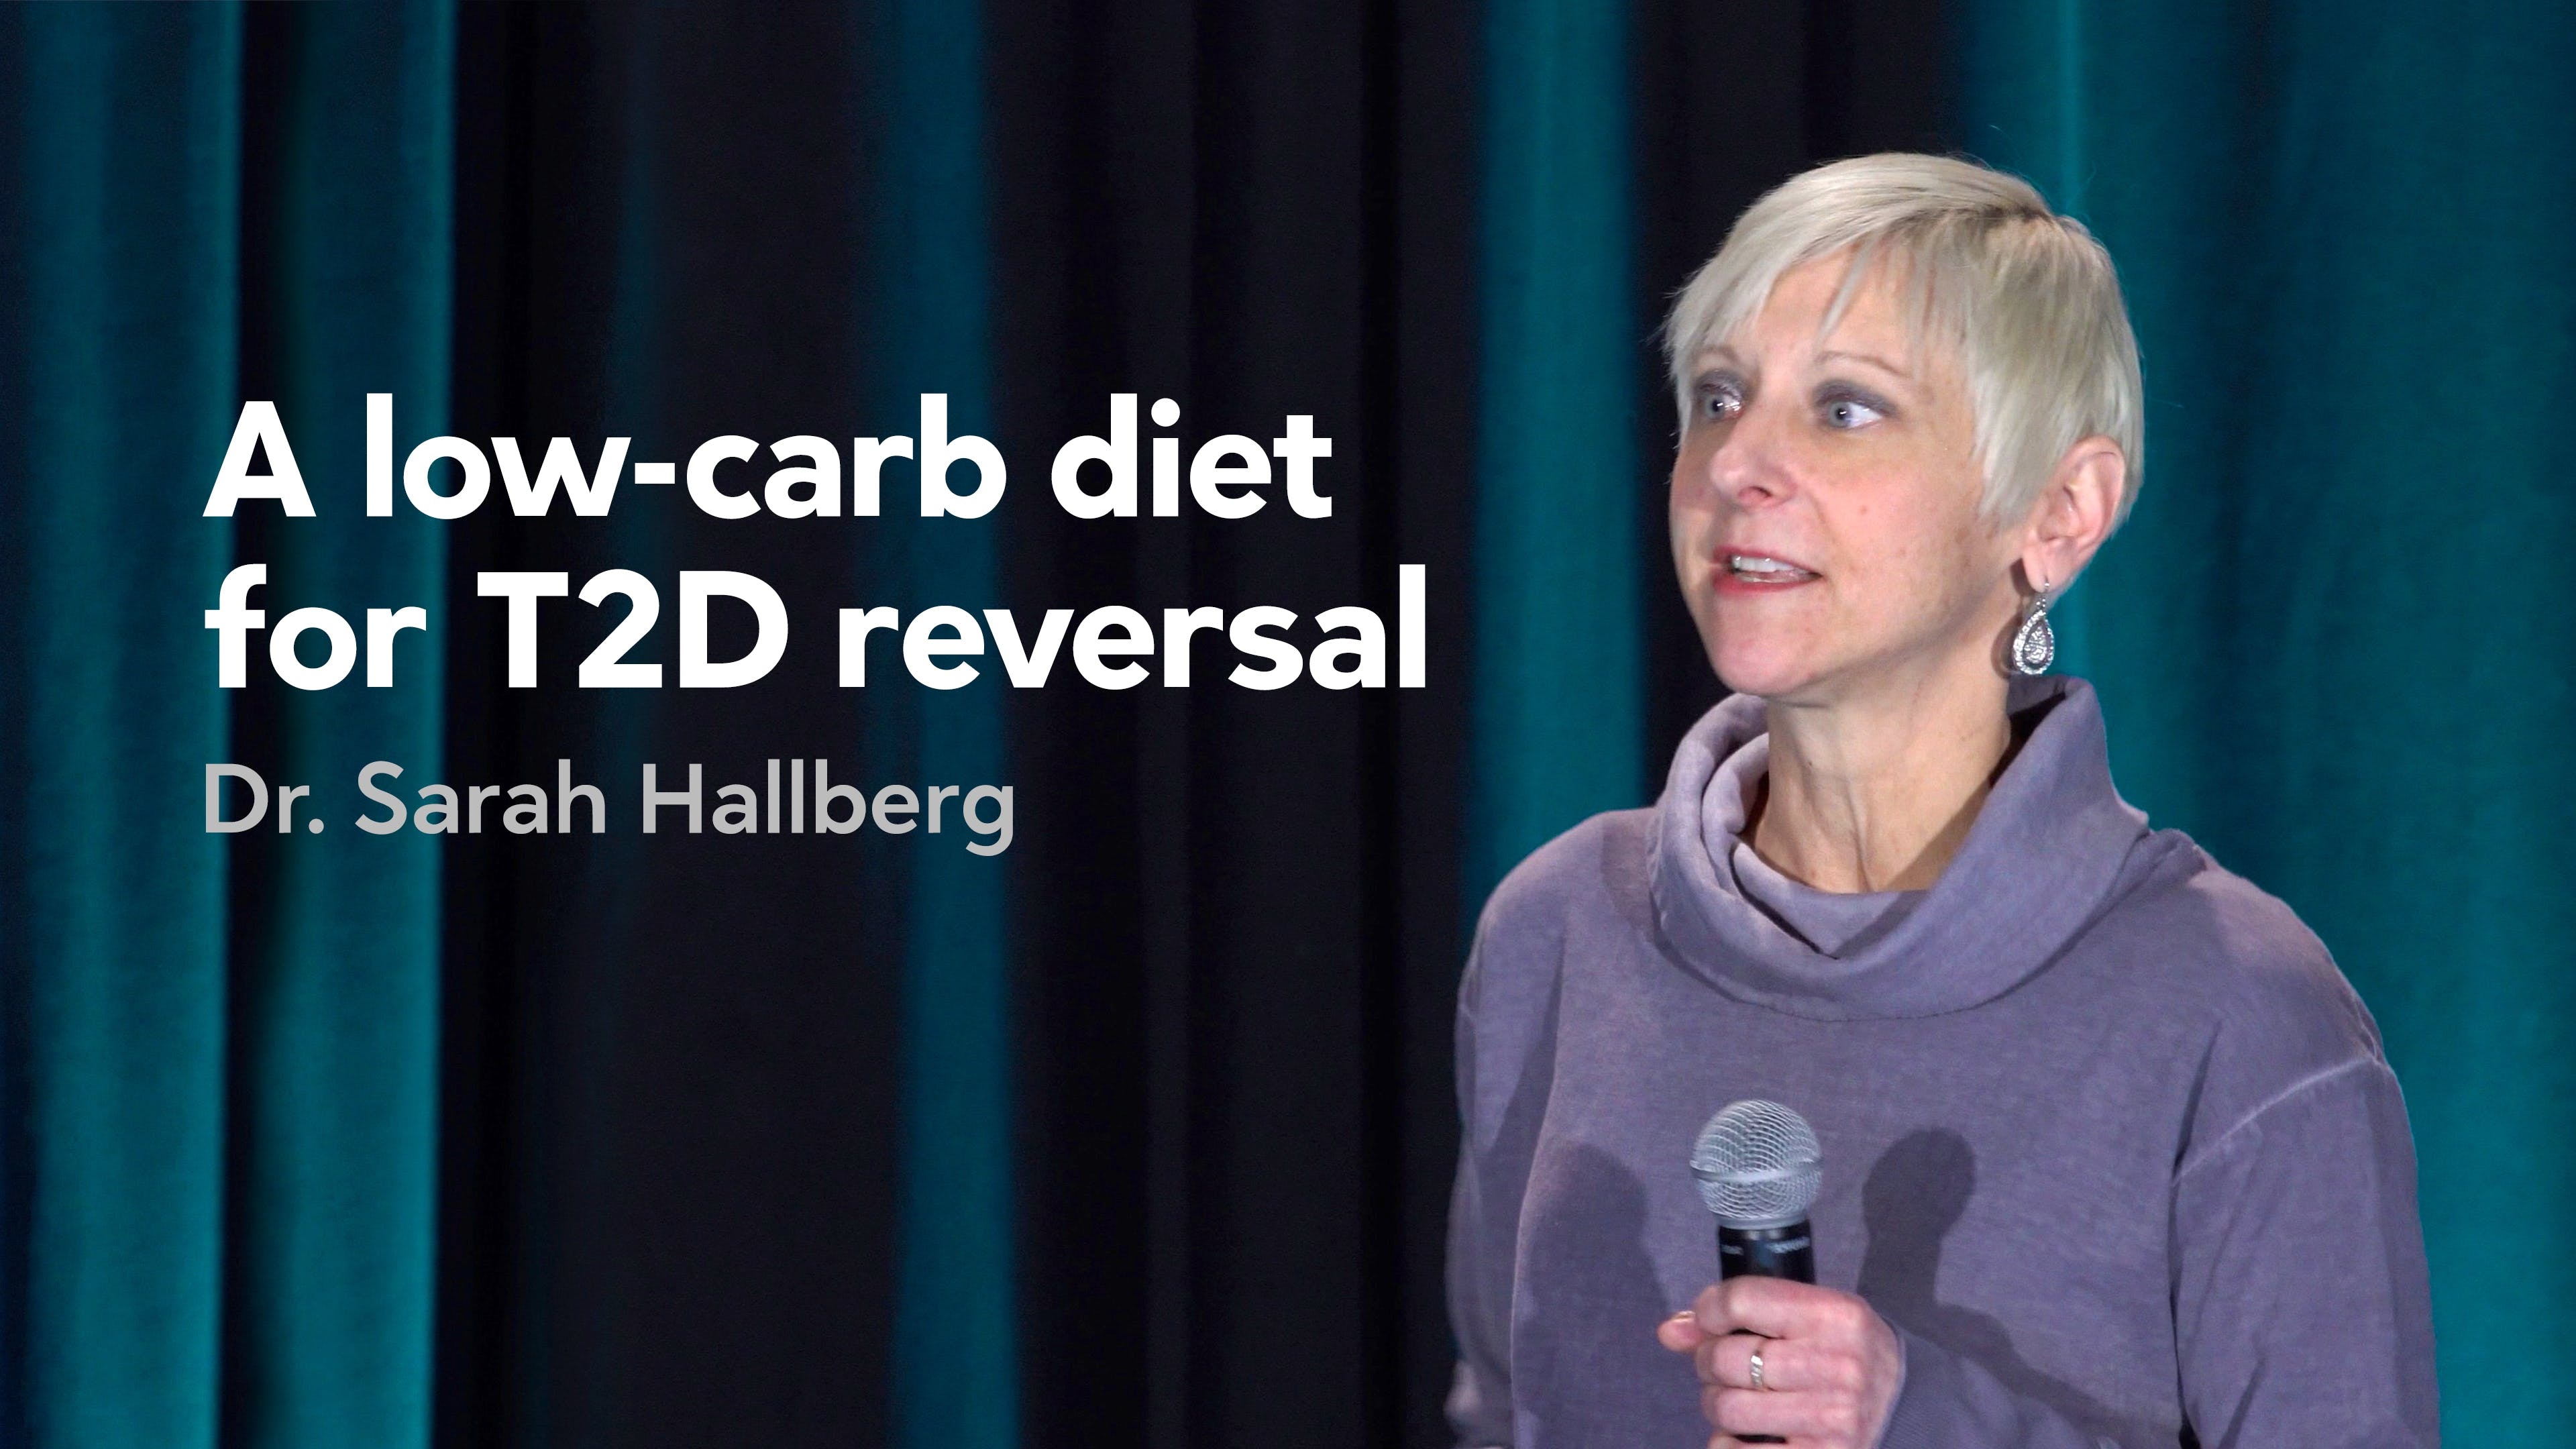 A low-carb diet for reversal of type 2 diabetes - Dr. Sarah Hallberg